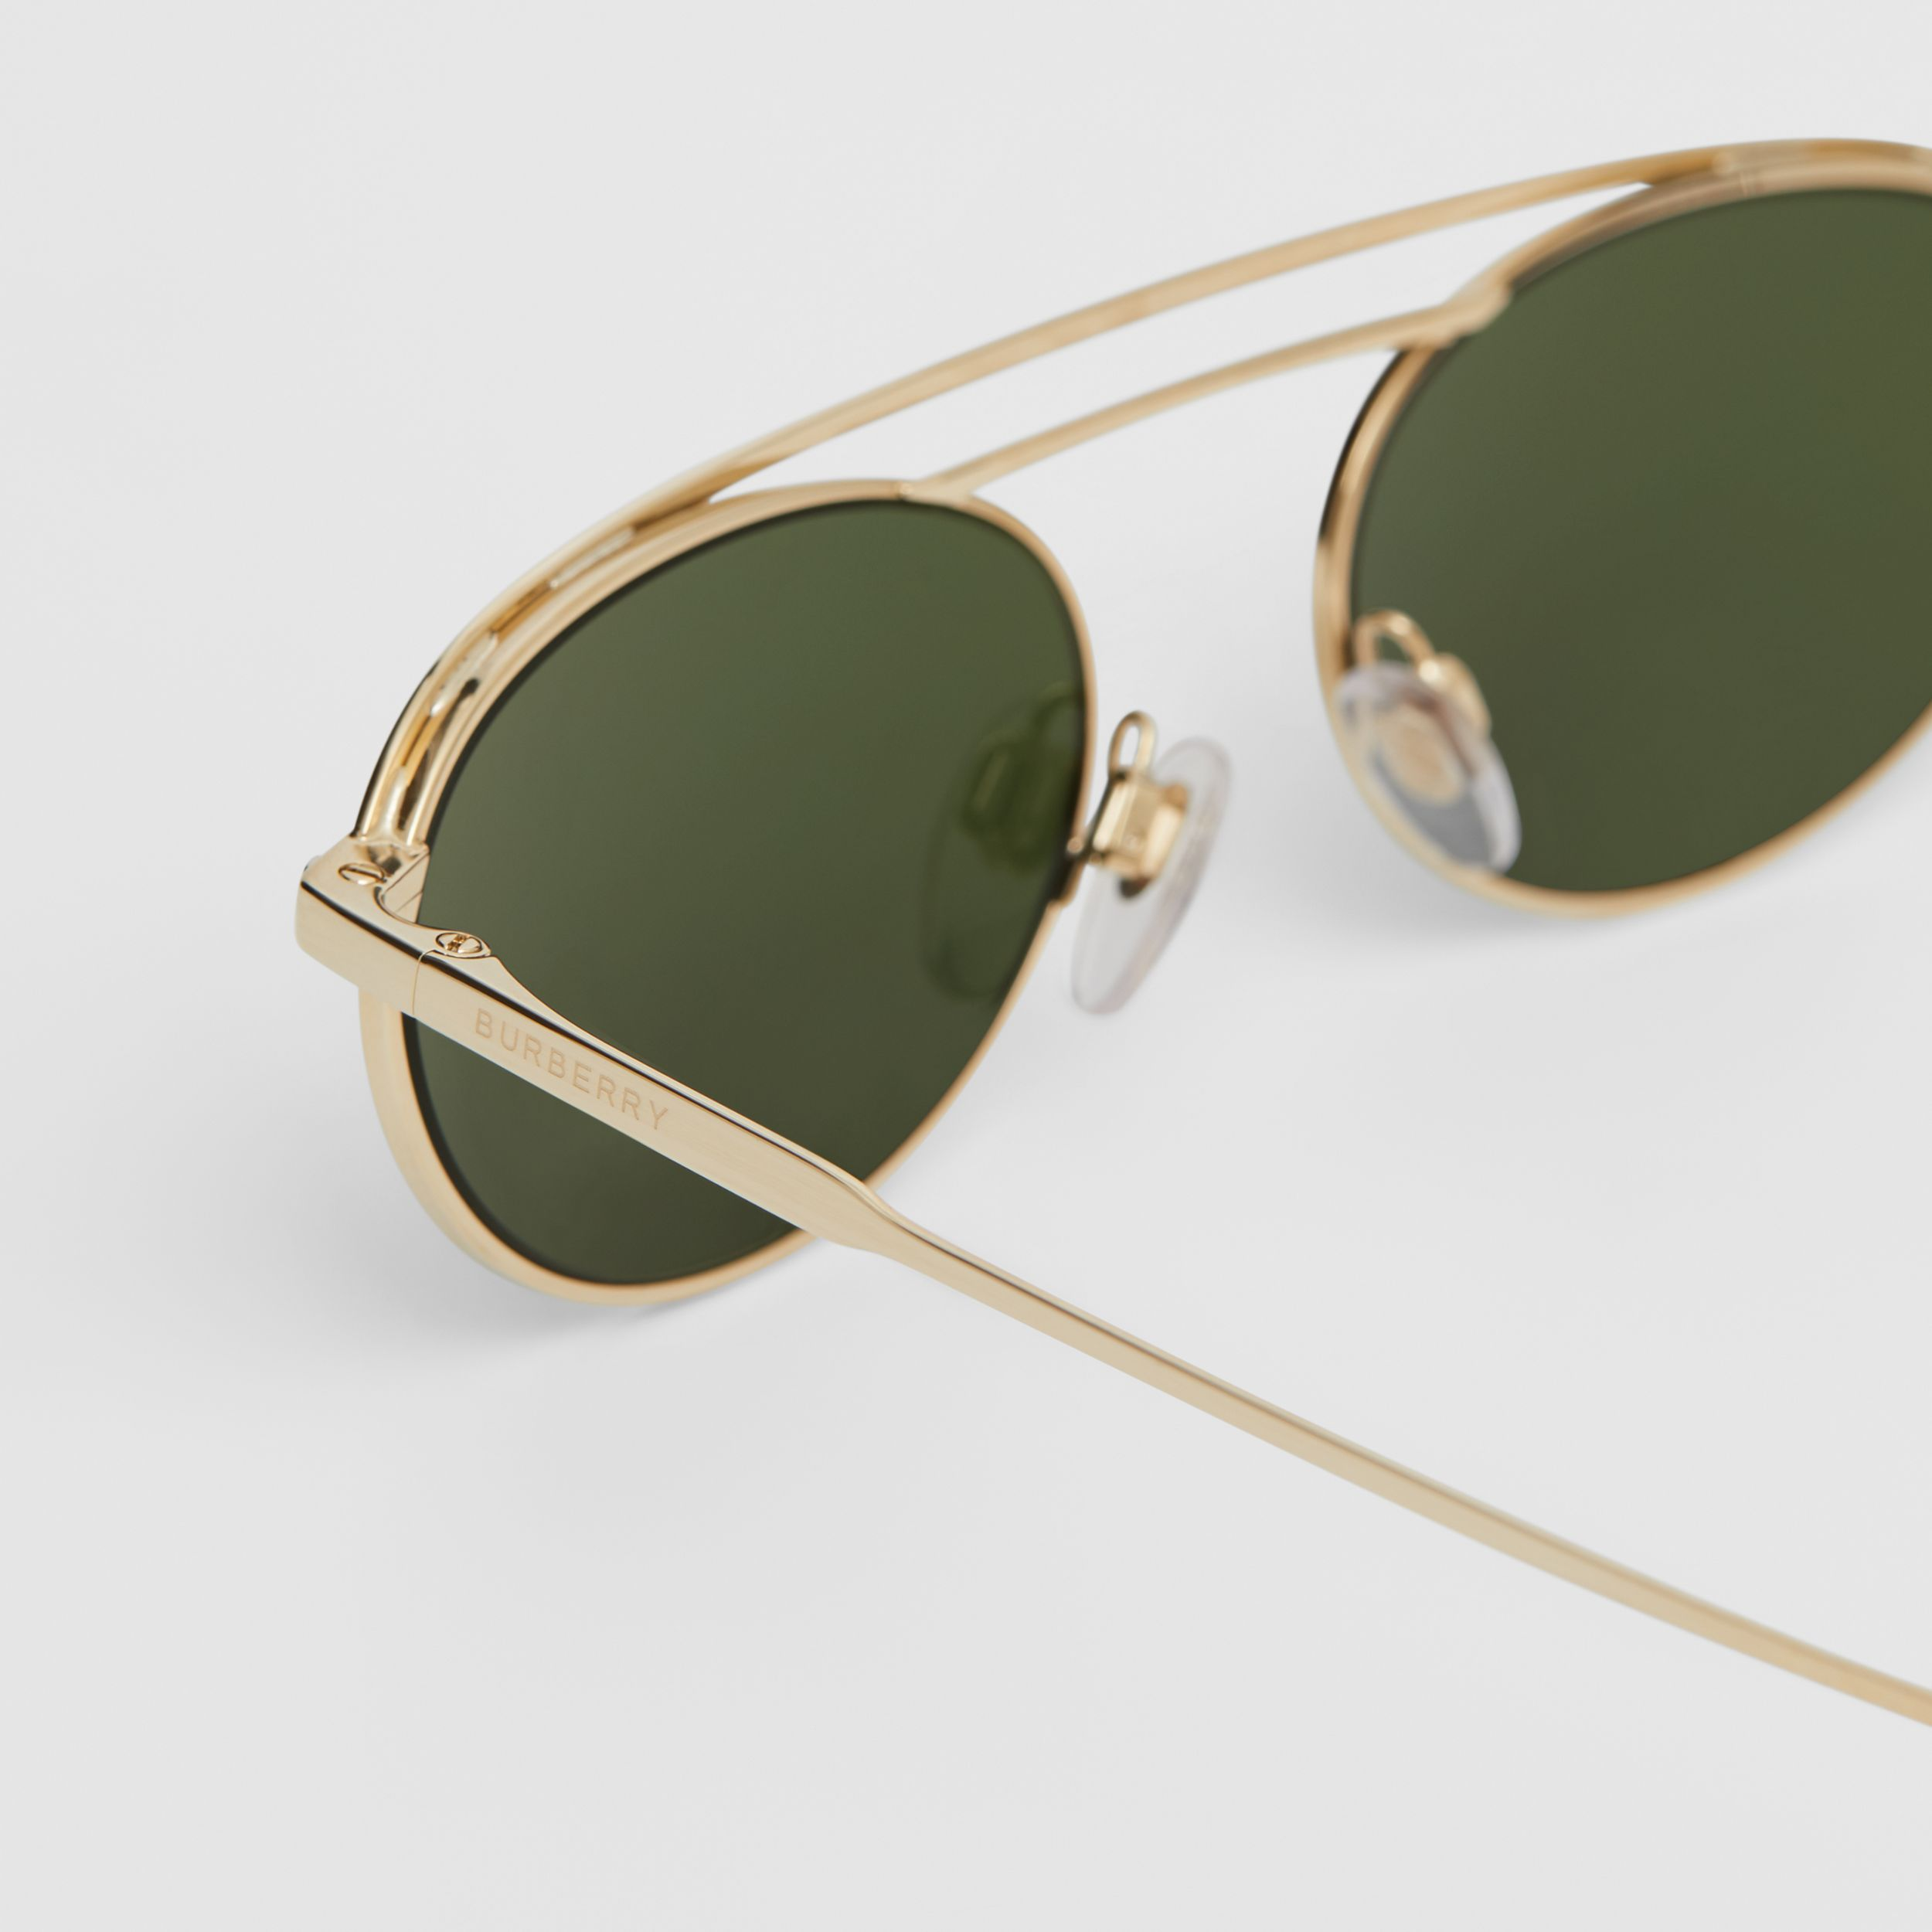 Oval Frame Sunglasses in Green - Women | Burberry - 2